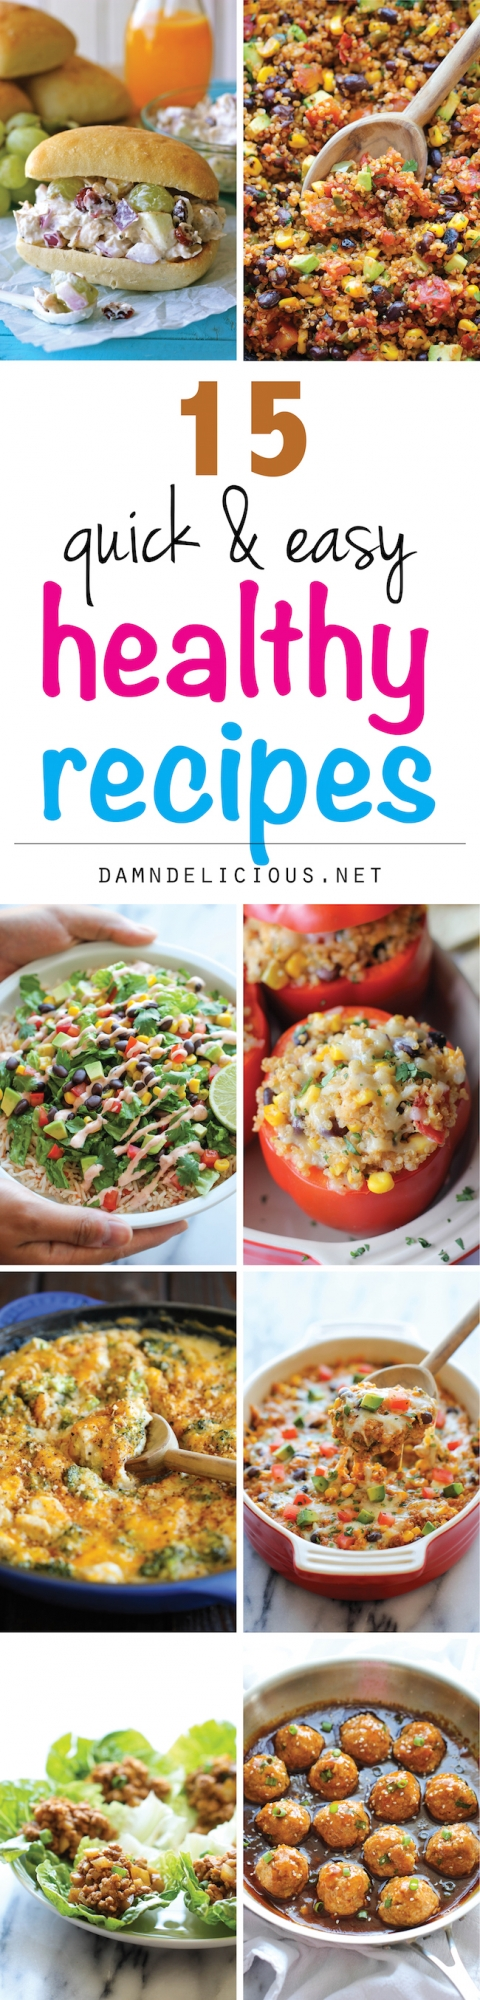 15-Quick-and-Easy-Healthy-Recipes-480x2000